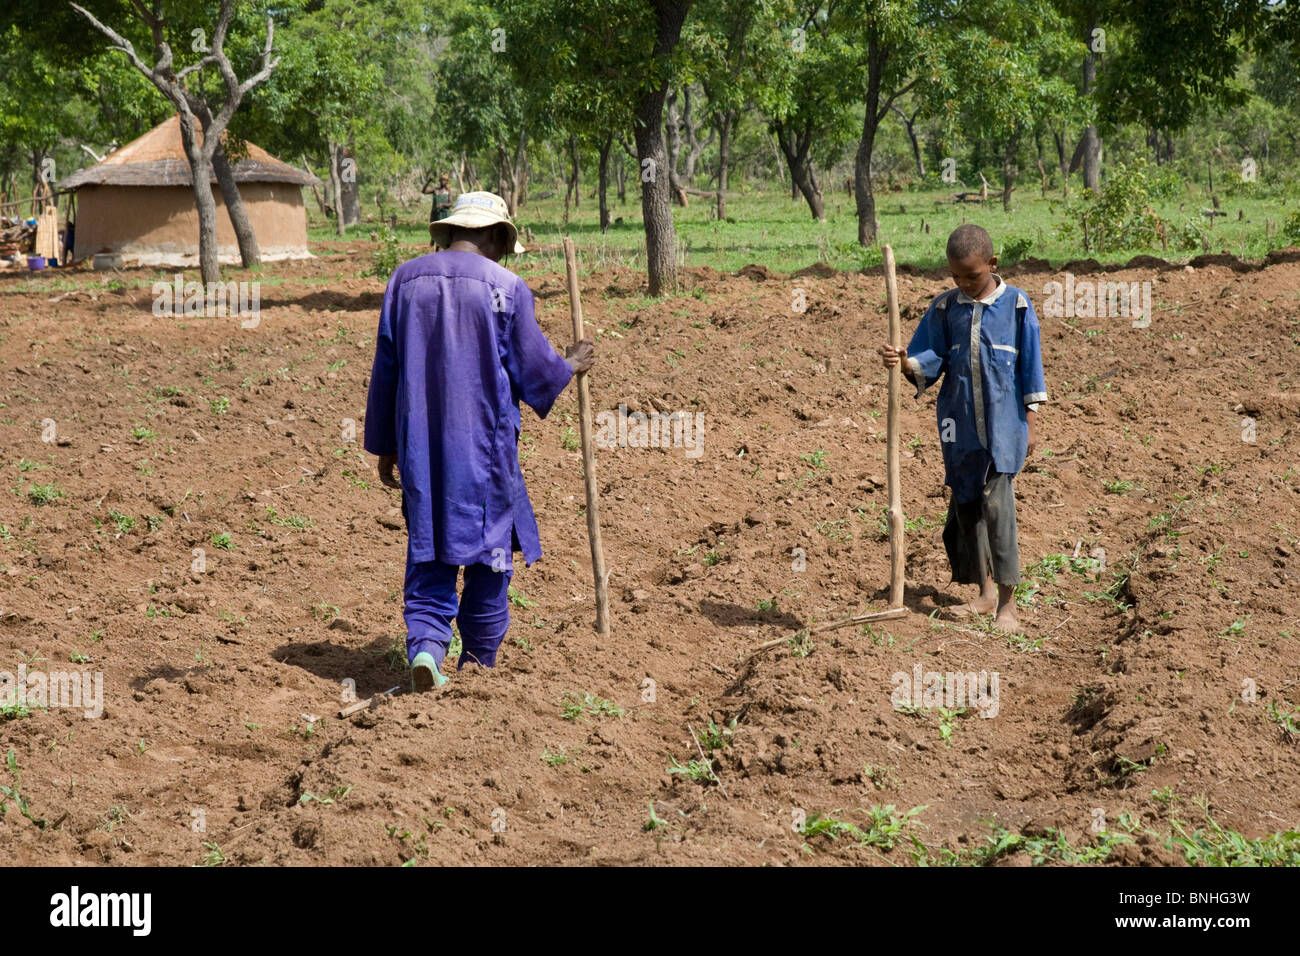 Sowing the maize crop in Ghana. They are making holes in the ridges of soil in which other children will sow maize - Stock Image